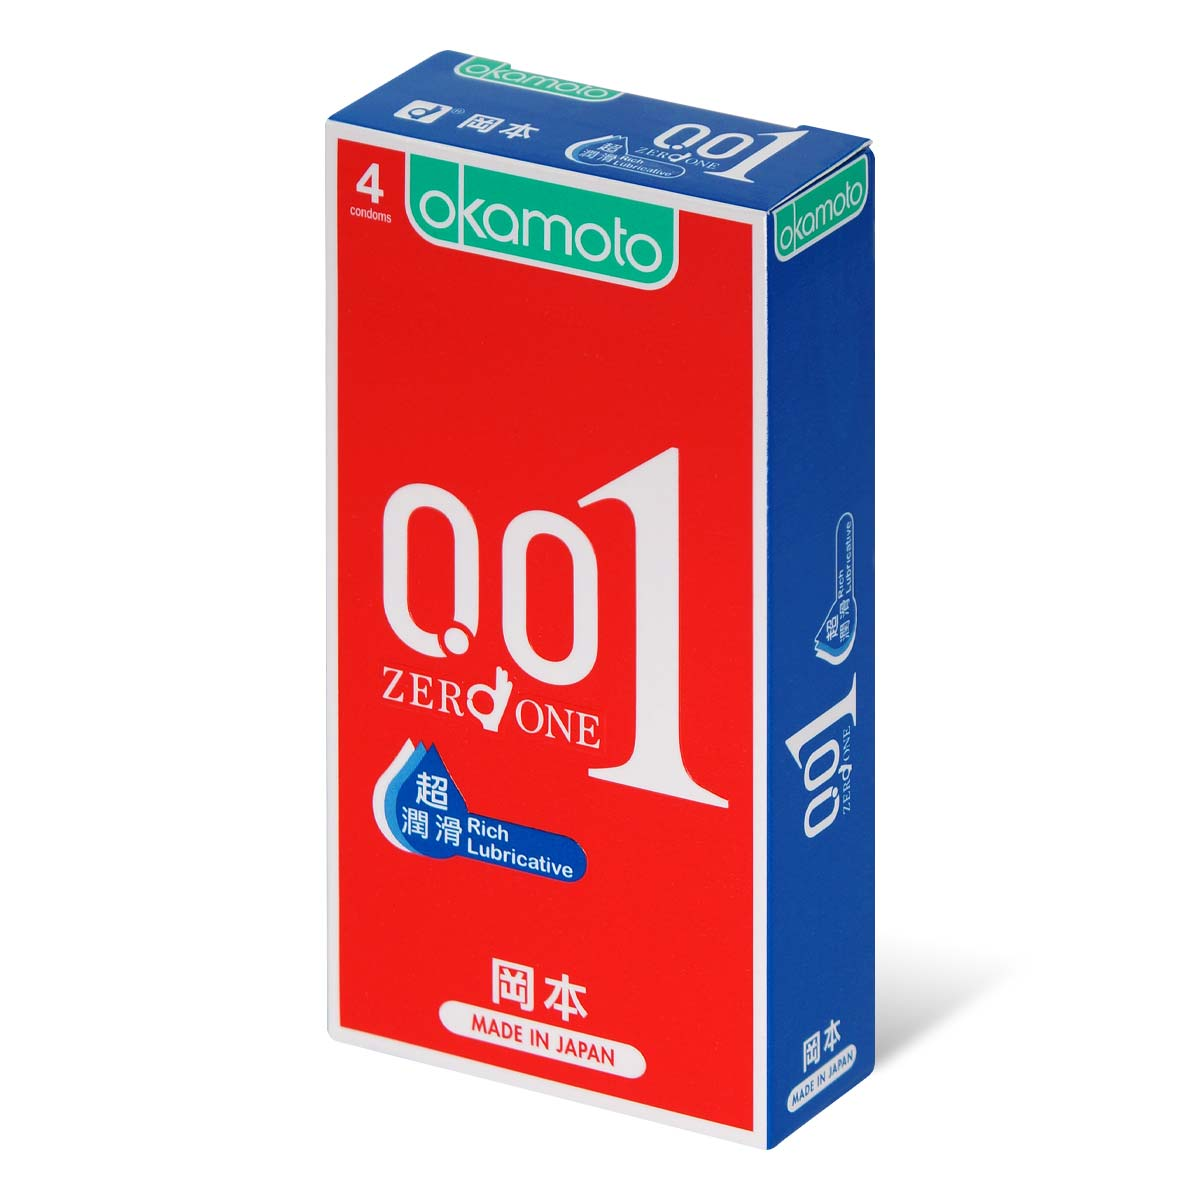 Okamoto 0.01 Rich Lubricative 4's Pack PU Condom